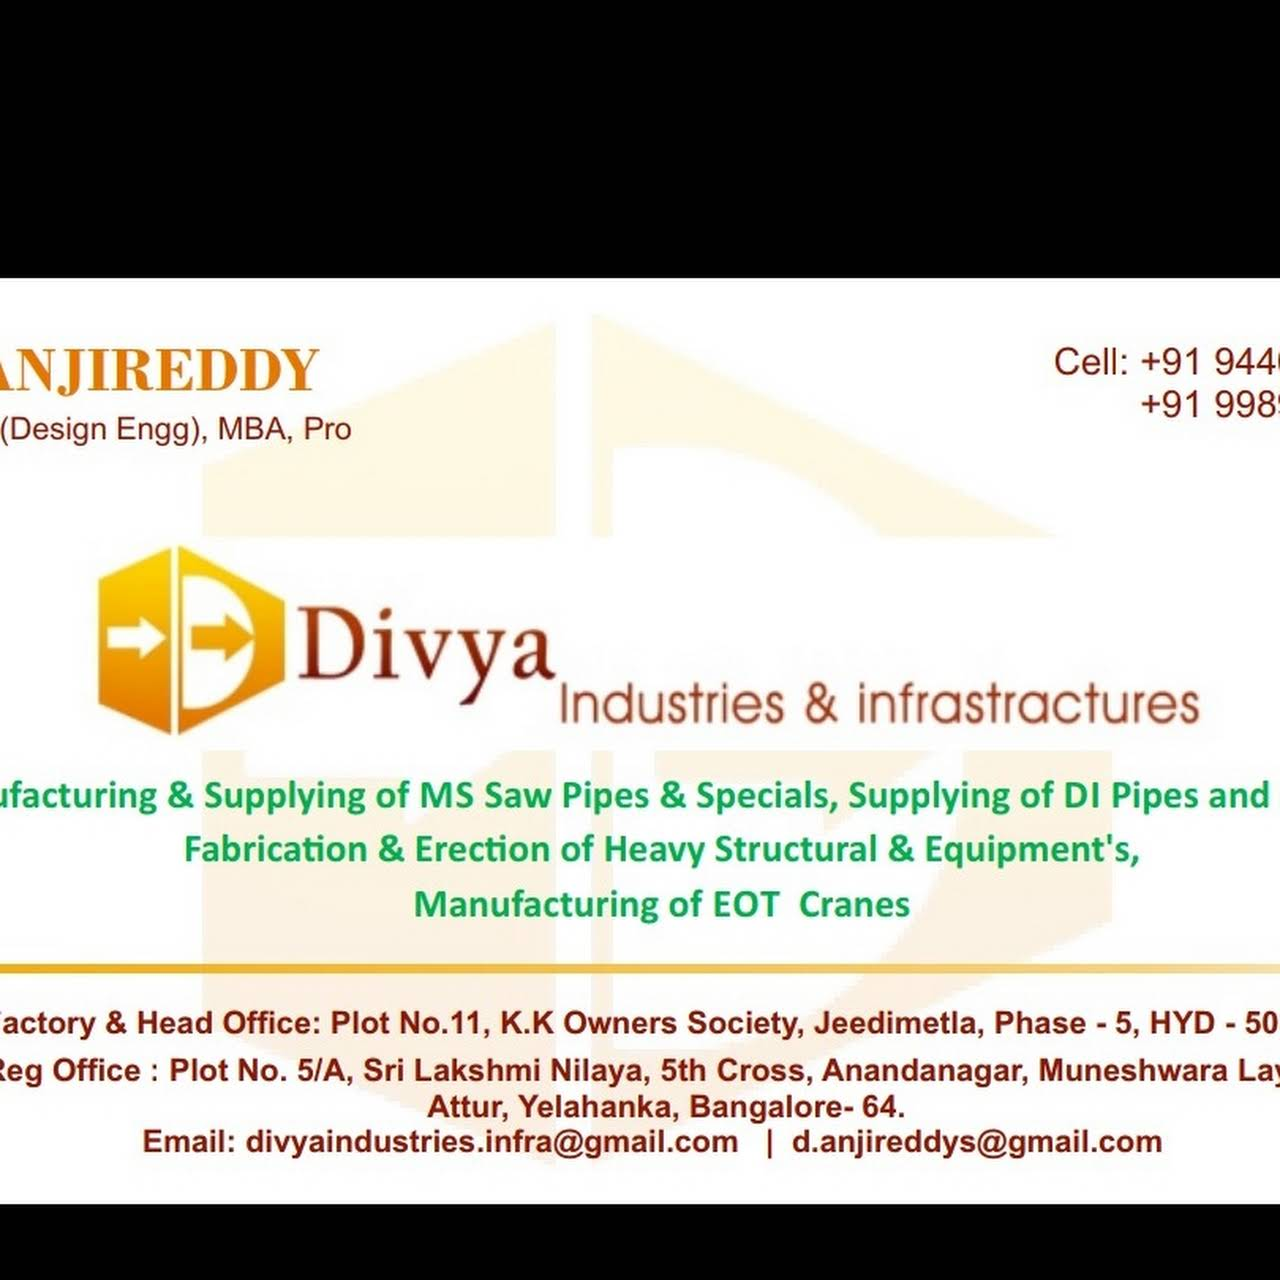 DIVYA INDUSTRIES AND INFRASTRUCTURES - Fabrication Engineer